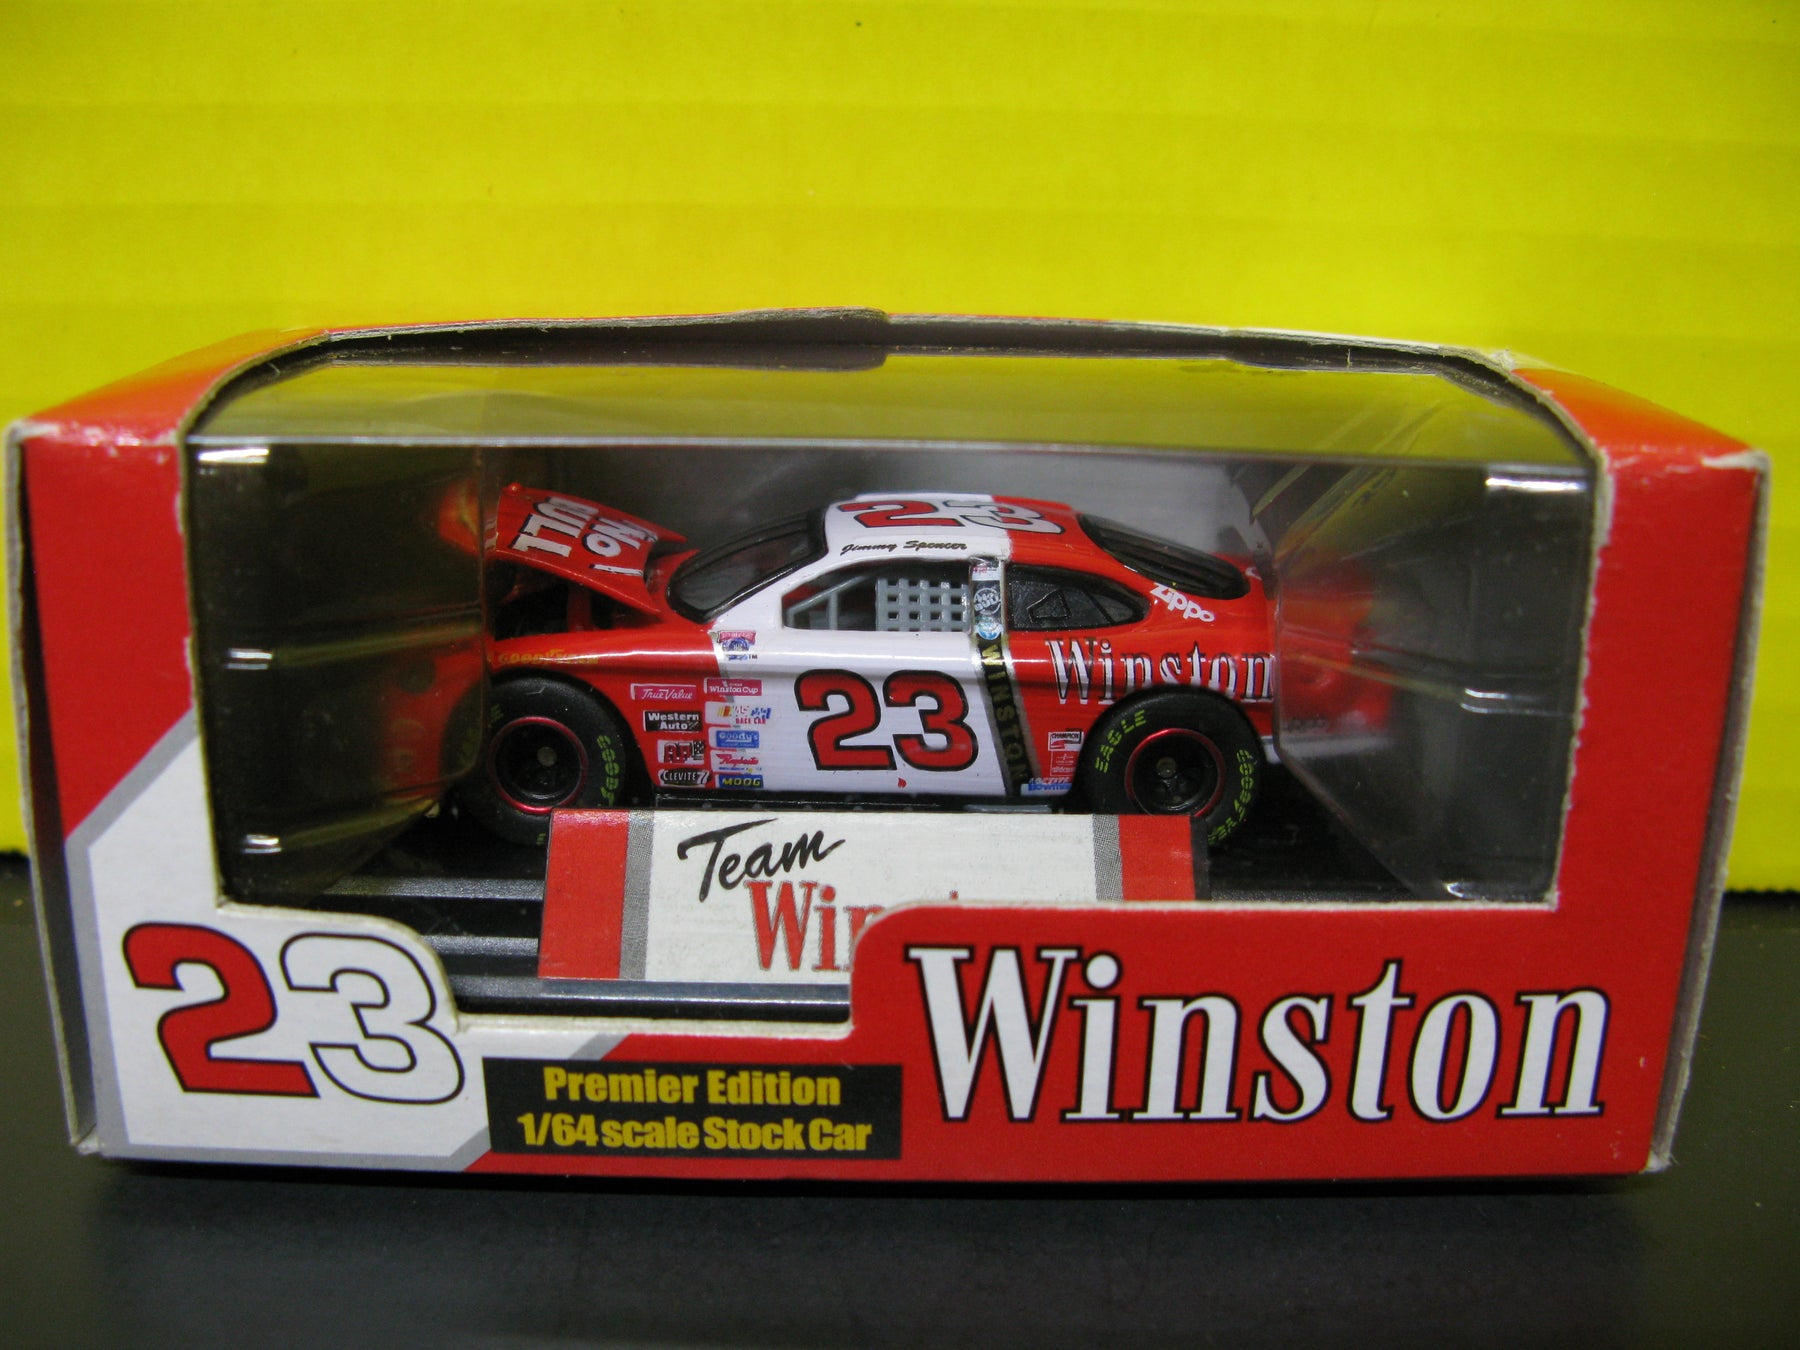 Winston 23 Premier Edition 1/64 scale Stock Car - Jimmy Spencer